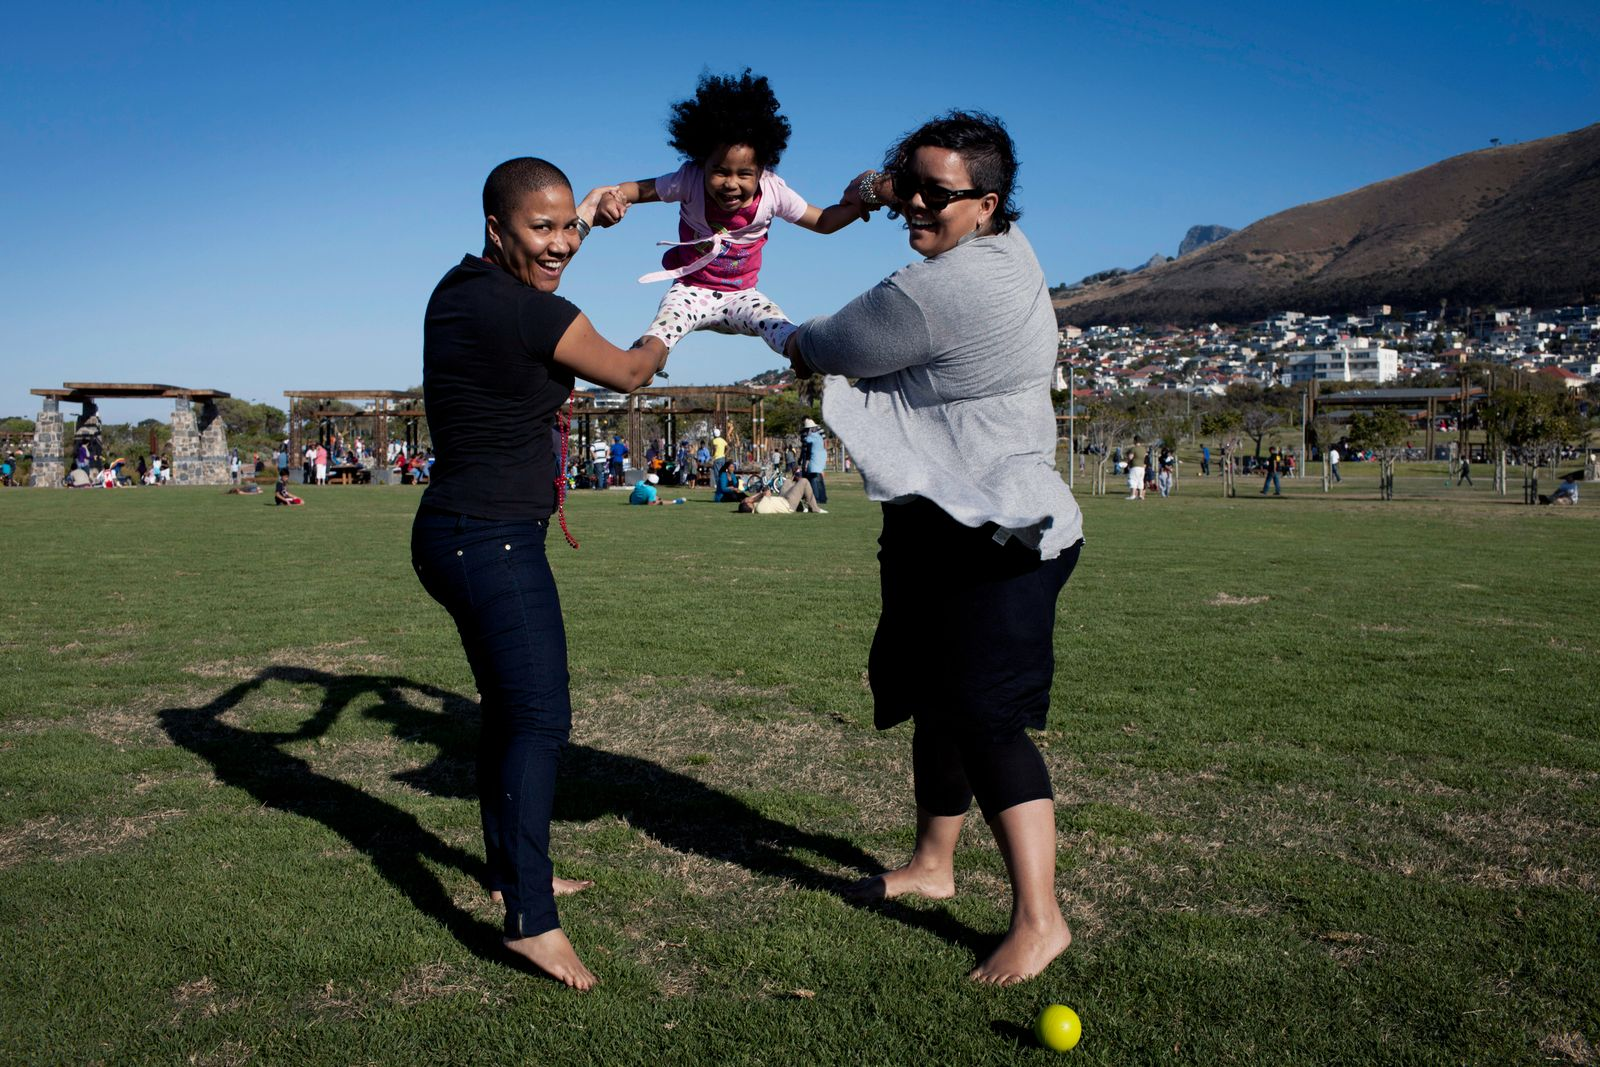 Lesbian couple with child in Cape Town, South Africa